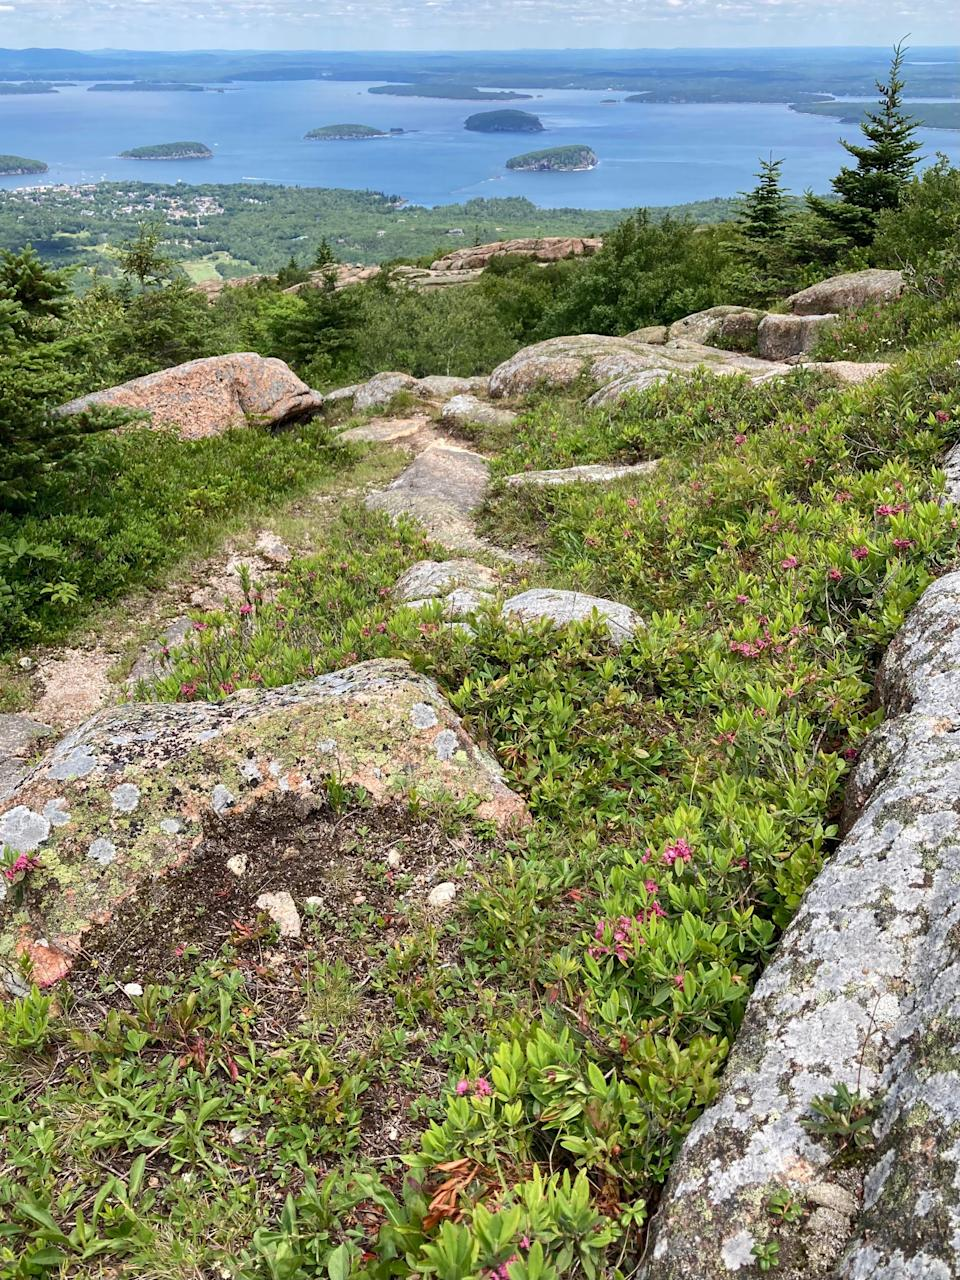 Wildflowers bloom among the rocks atop Cadillac Mountain at Acadia National Park in Maine. This summer, the National Park Service is requiring reservations to drive up Cadillac Summit Road to avoid overcrowding.